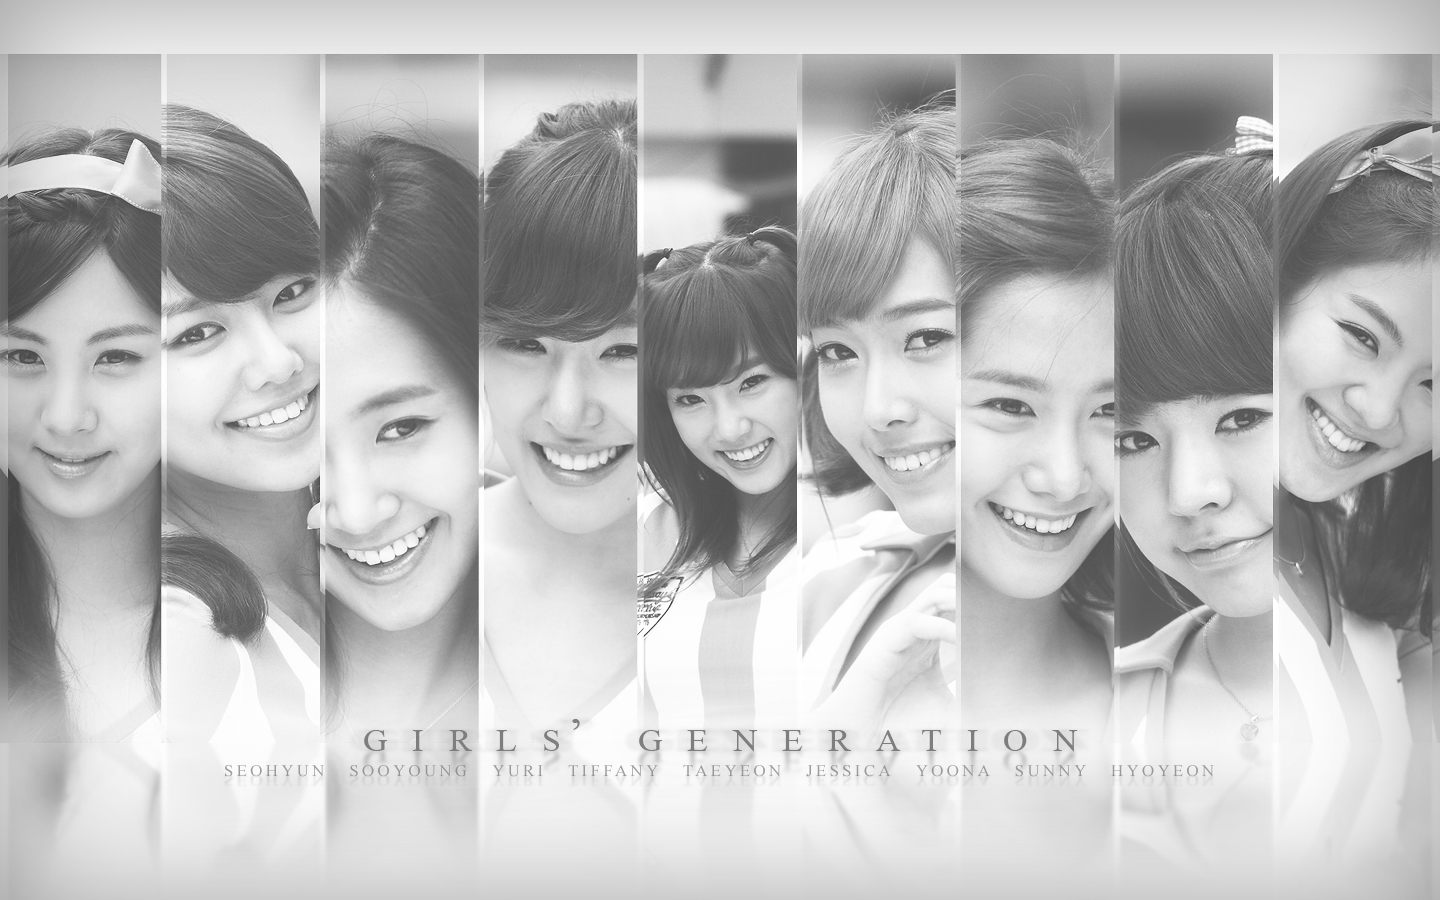 girls generation snsd Celebrity HD Wallpaper